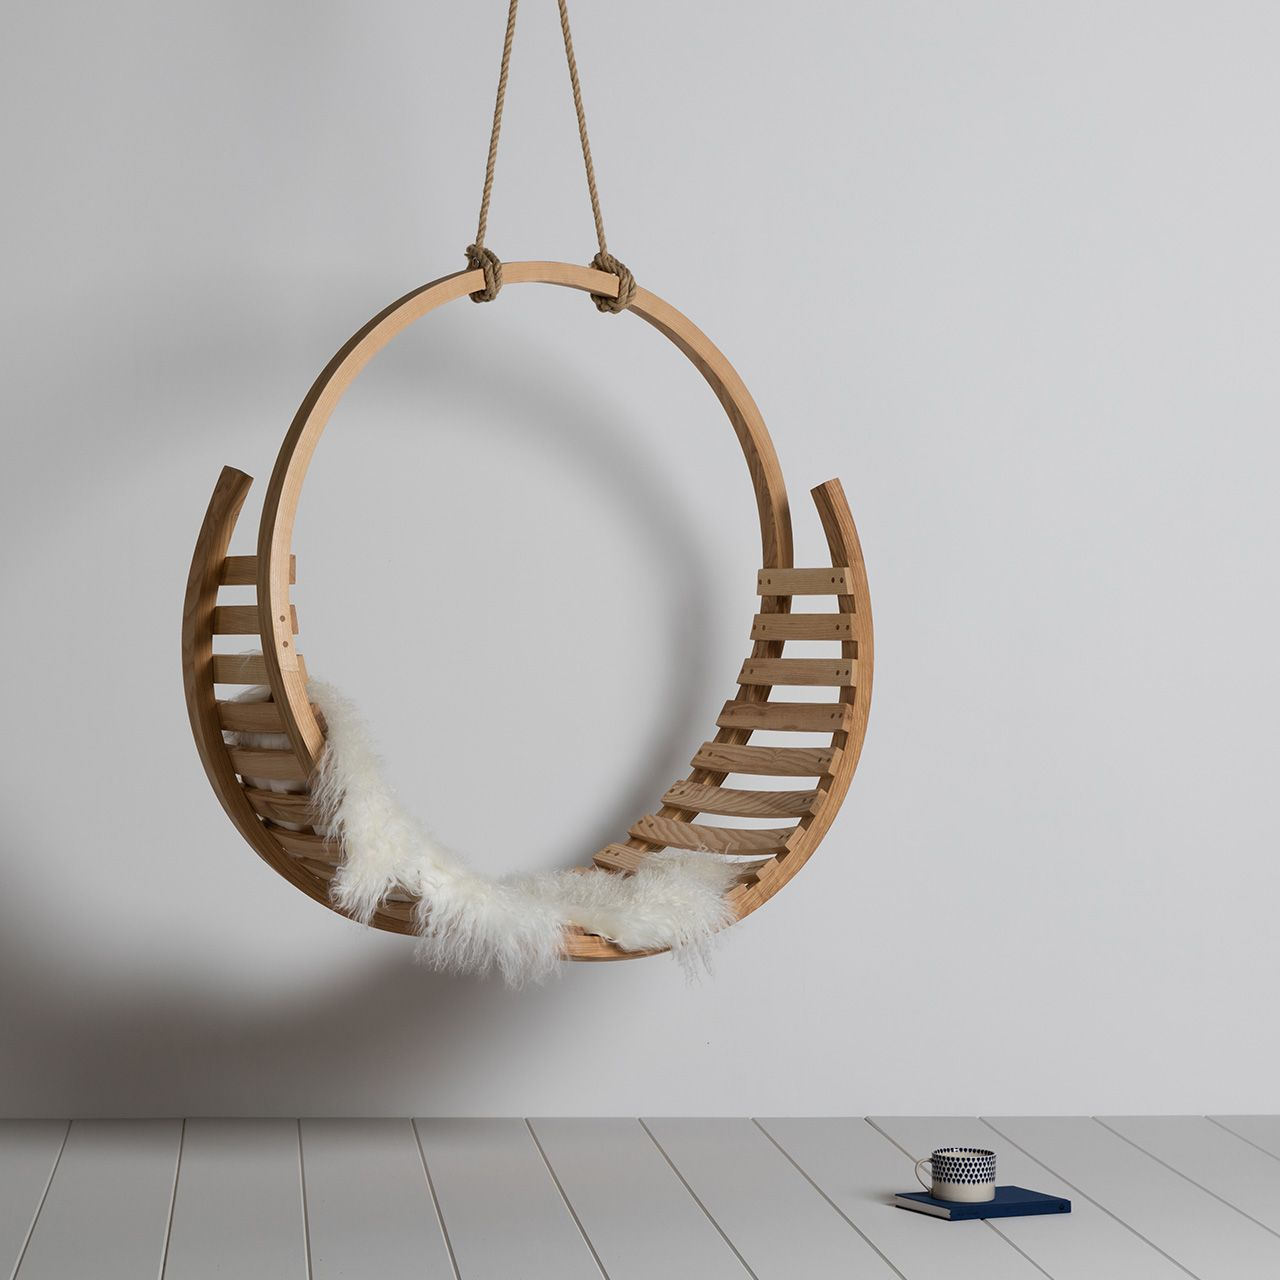 British furniture designer Tom Raffield invented a new technique for steam bending wood and has built a business around the complex forms it creates